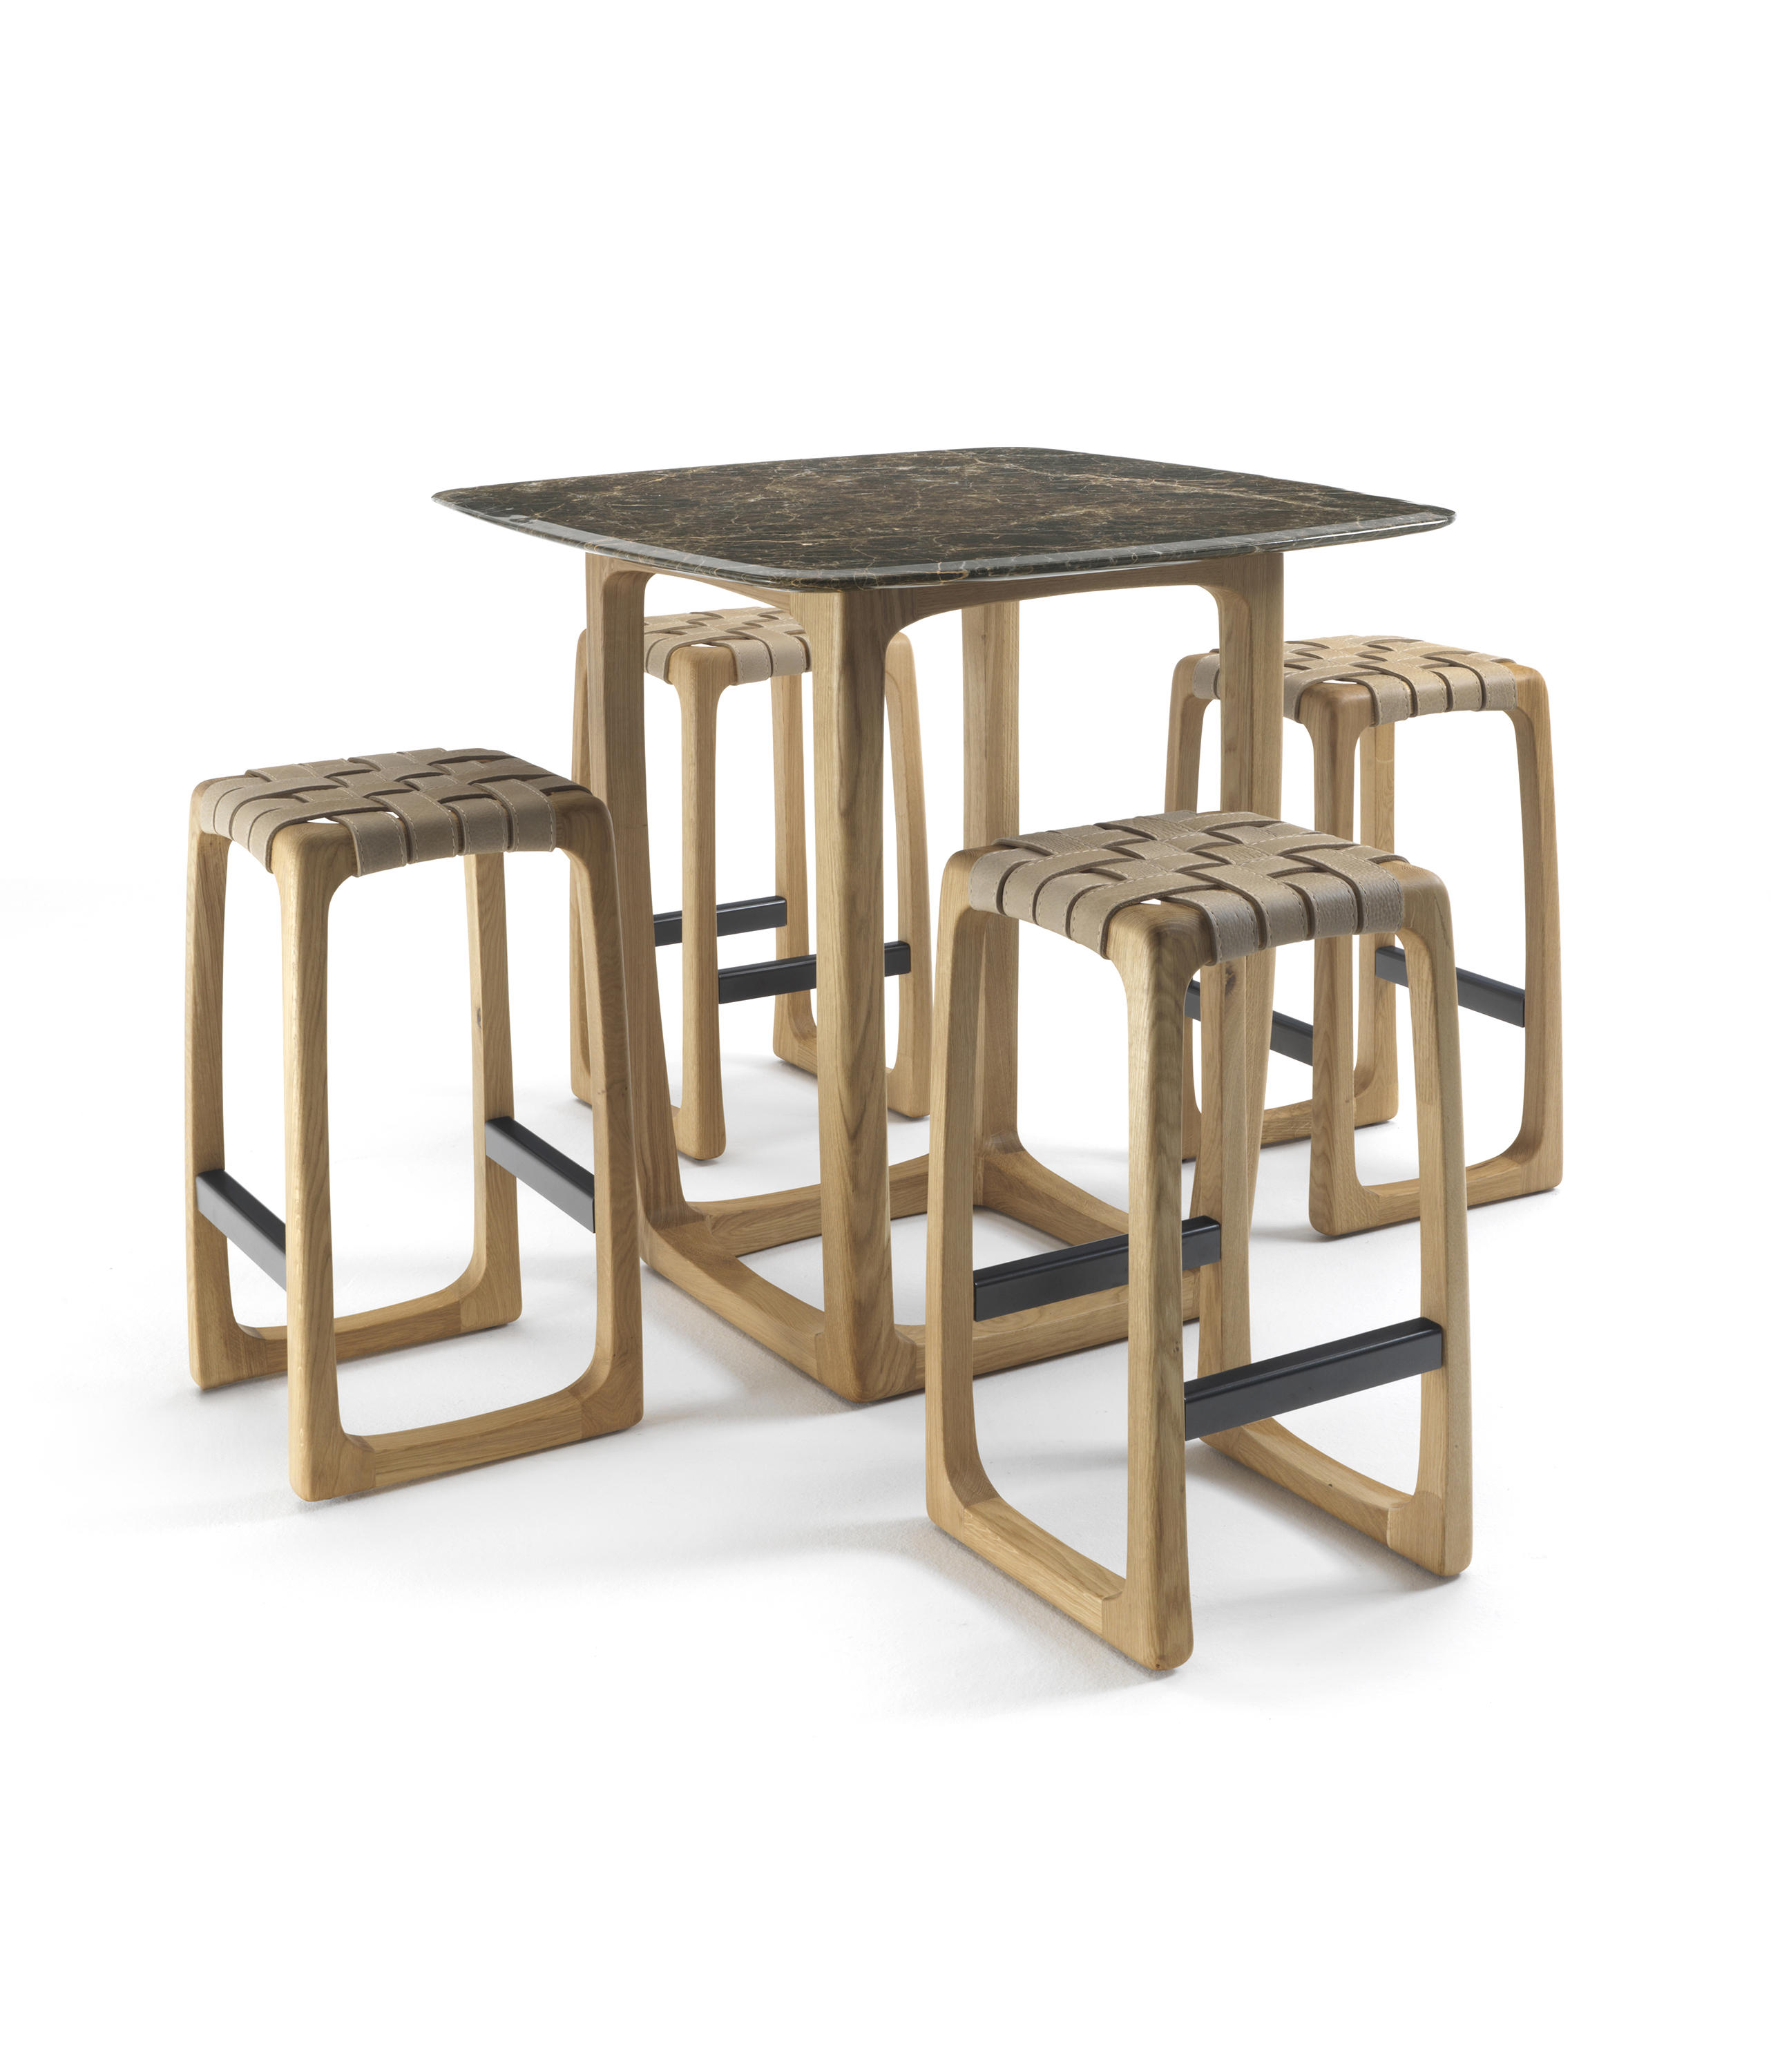 ... Bungalow Dining Chair By Riva 1920 ...